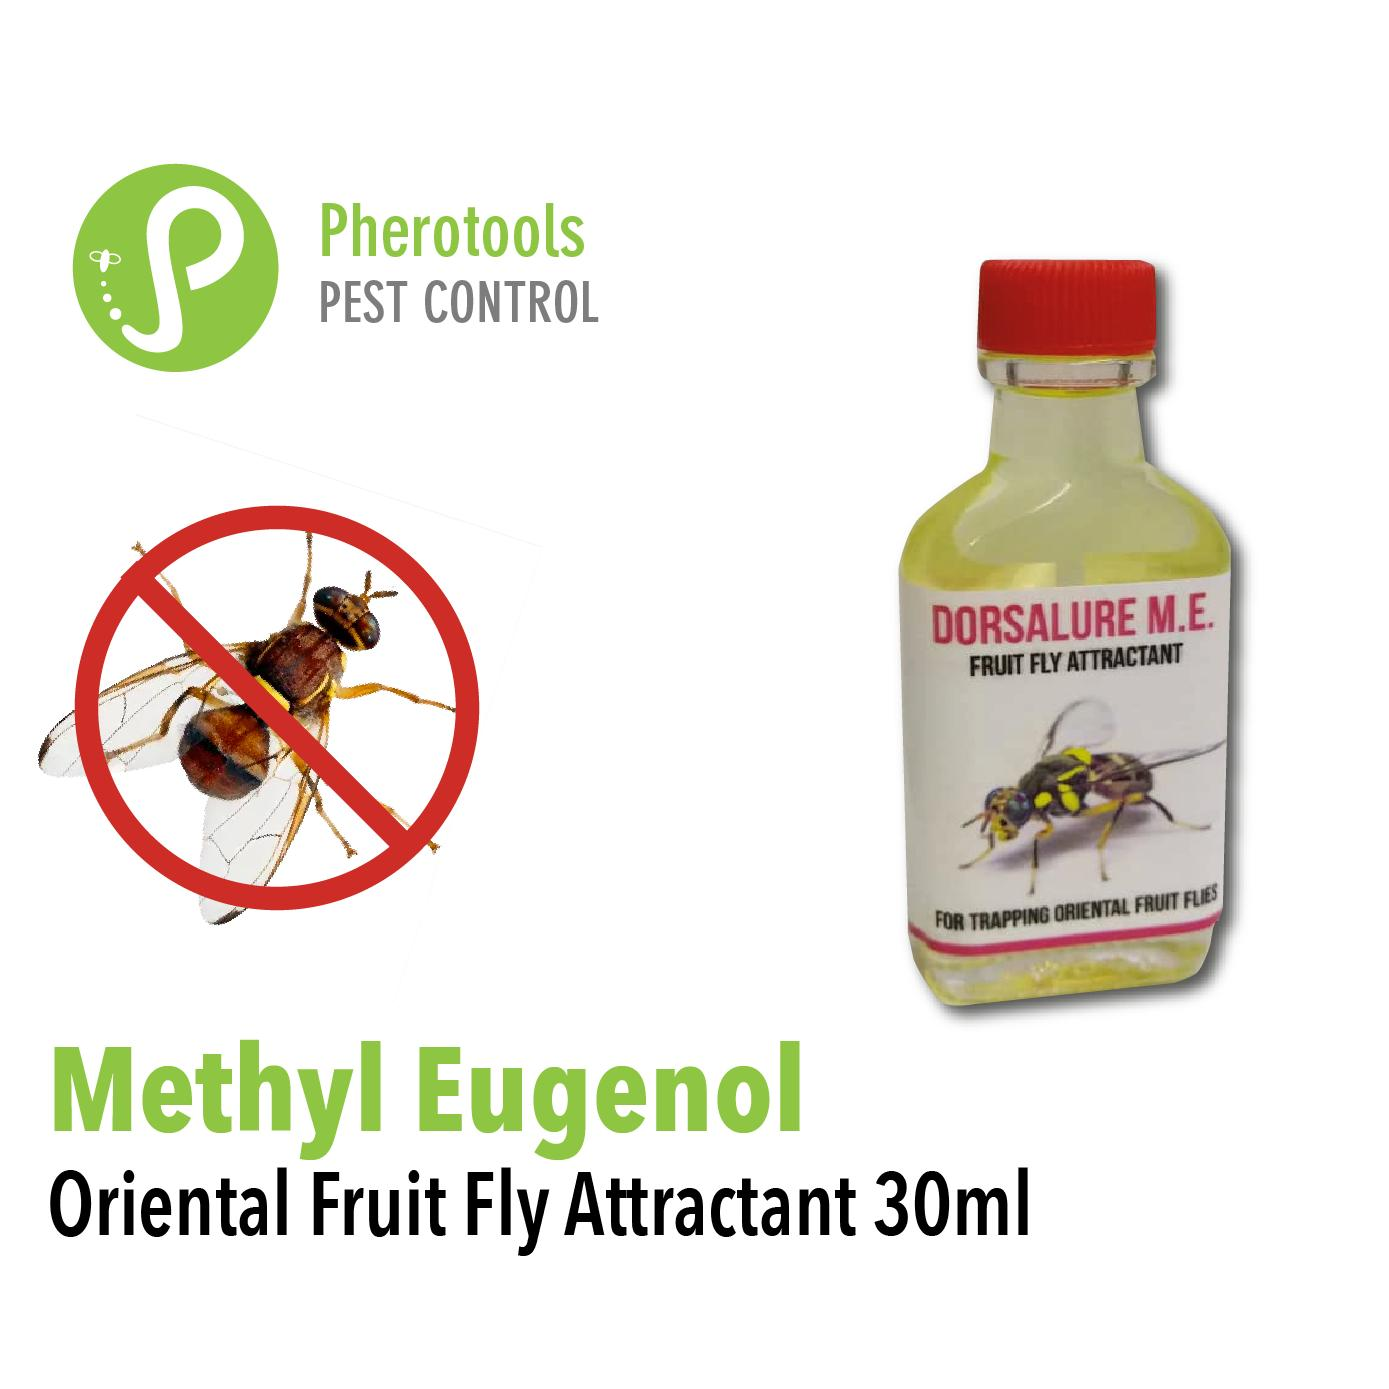 Methyl Eugenol Pheromone Lures (30ml) For organic pest control. Non-toxic, environmentally friendly oriental fruit fly attractant for use in trapping